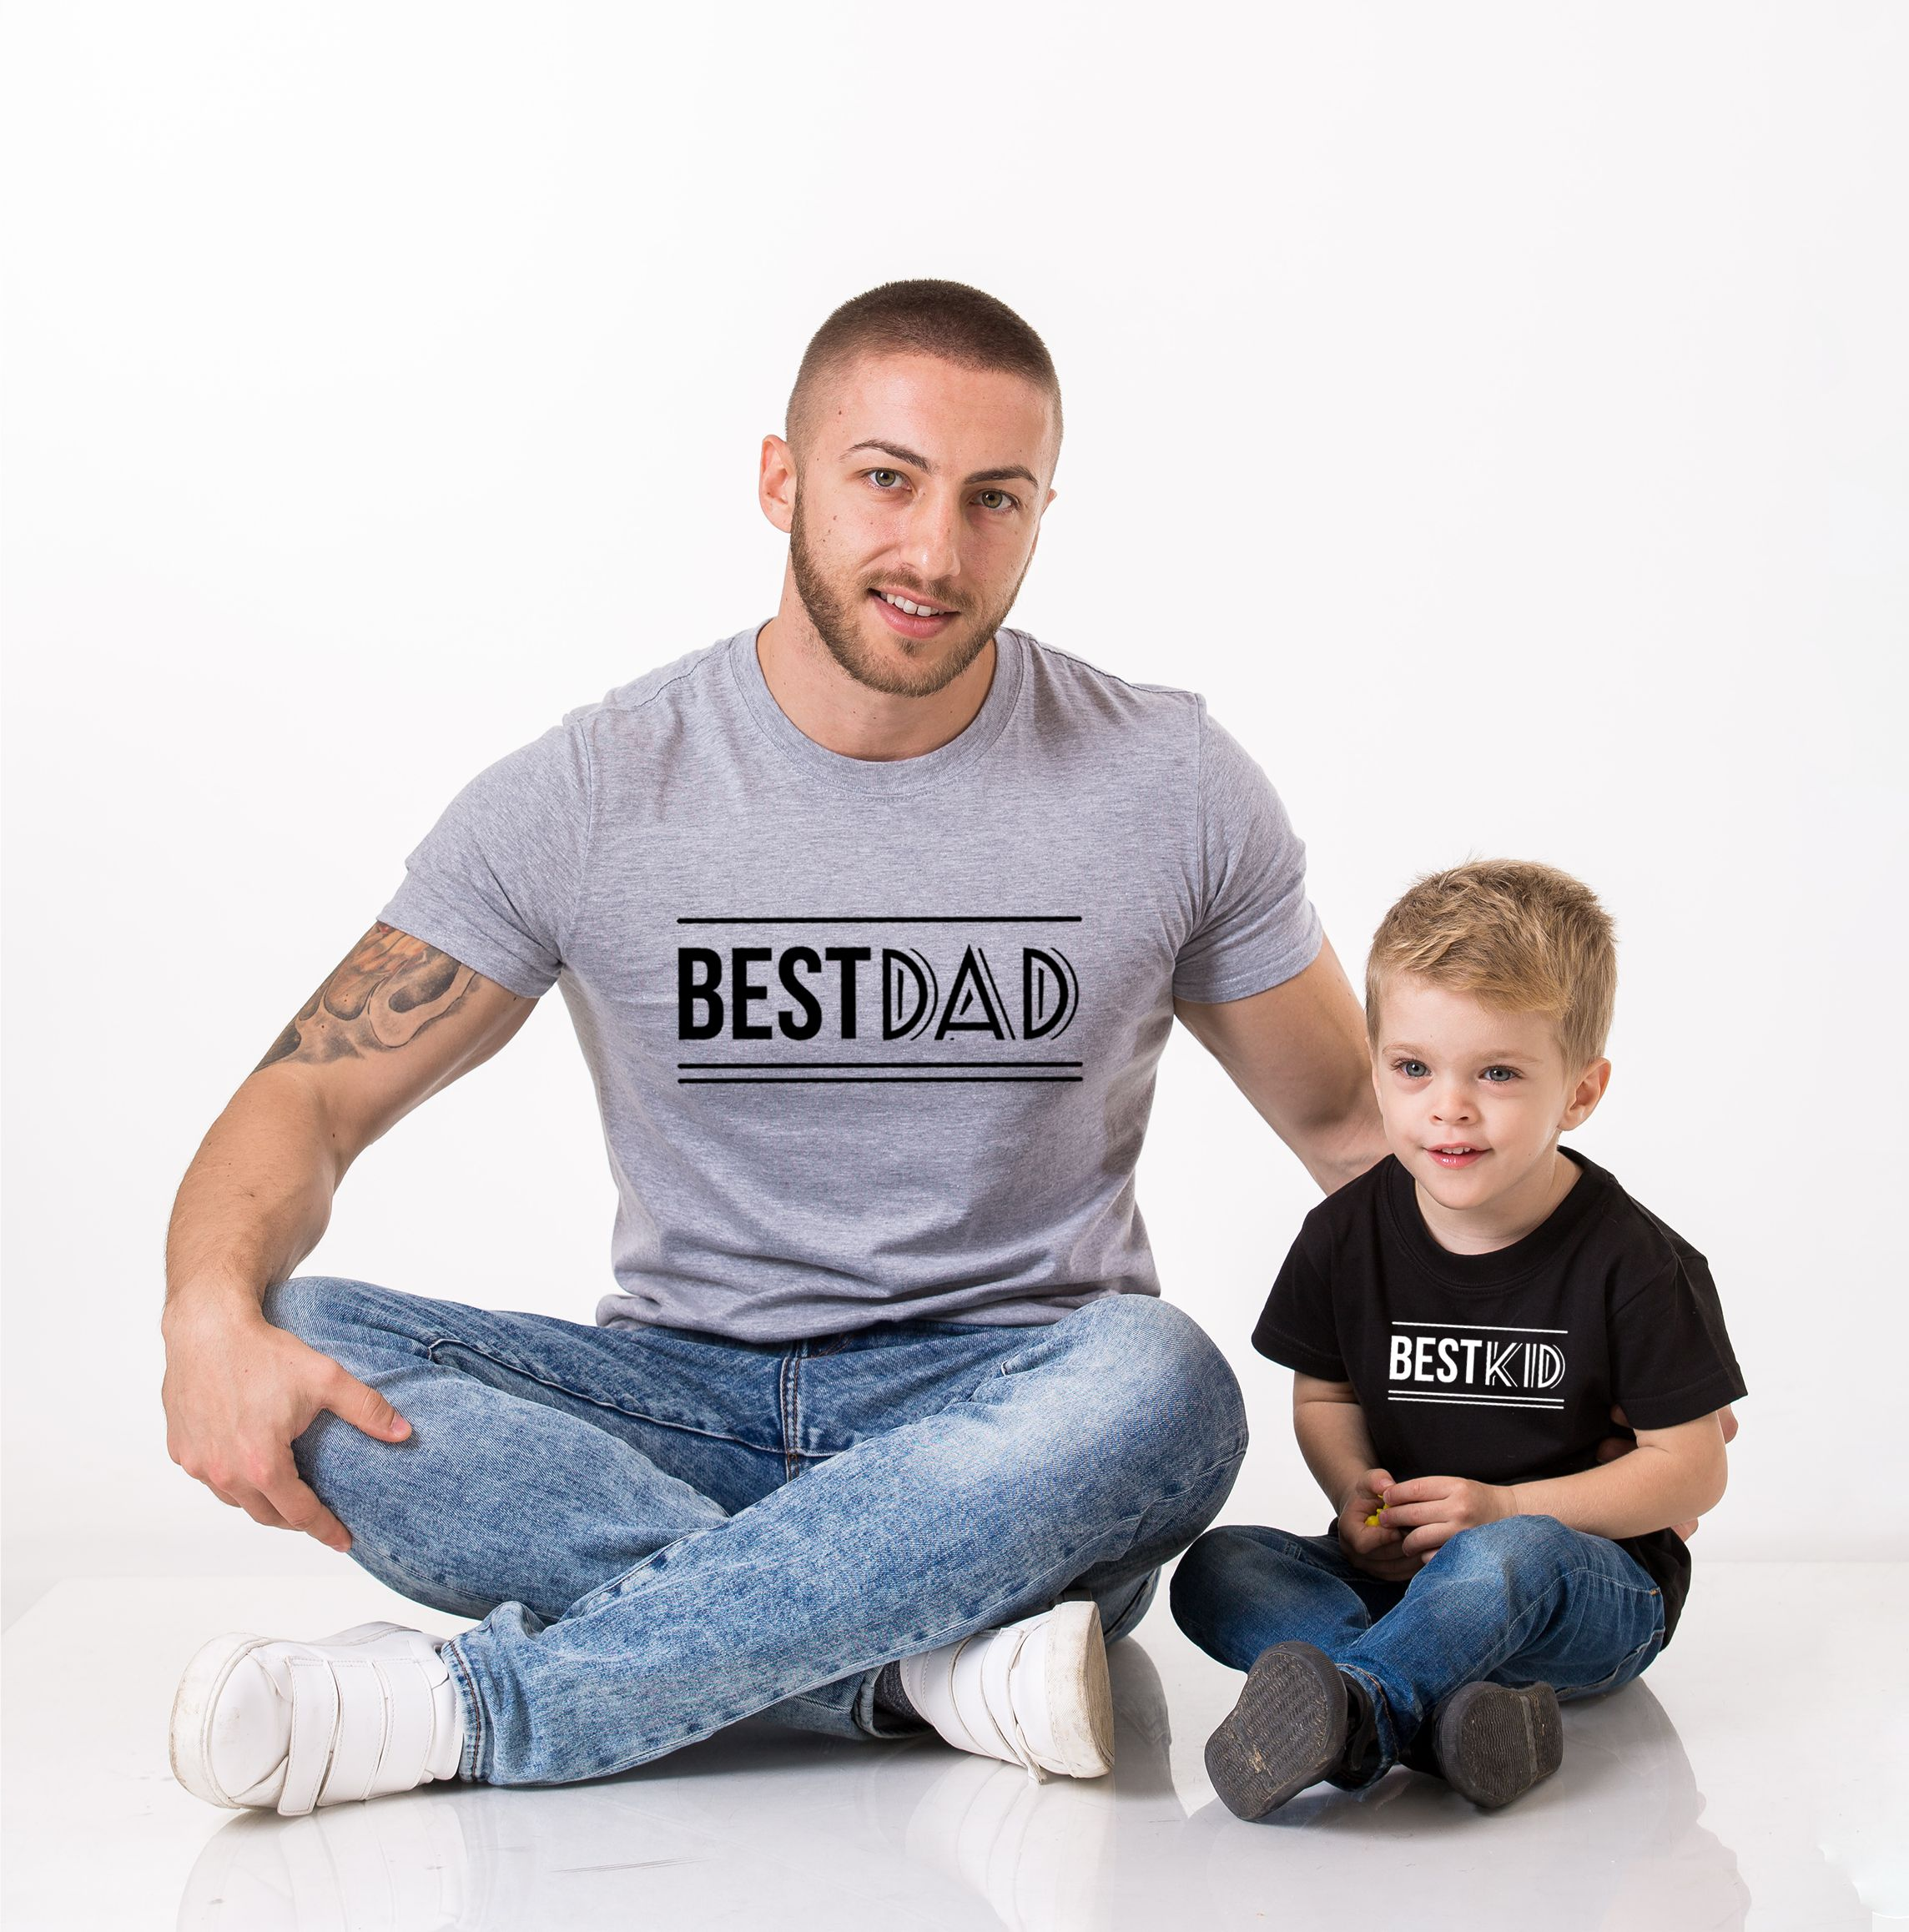 Best Dad Best Kid Shirts, Matching Daddy and Me Shirts